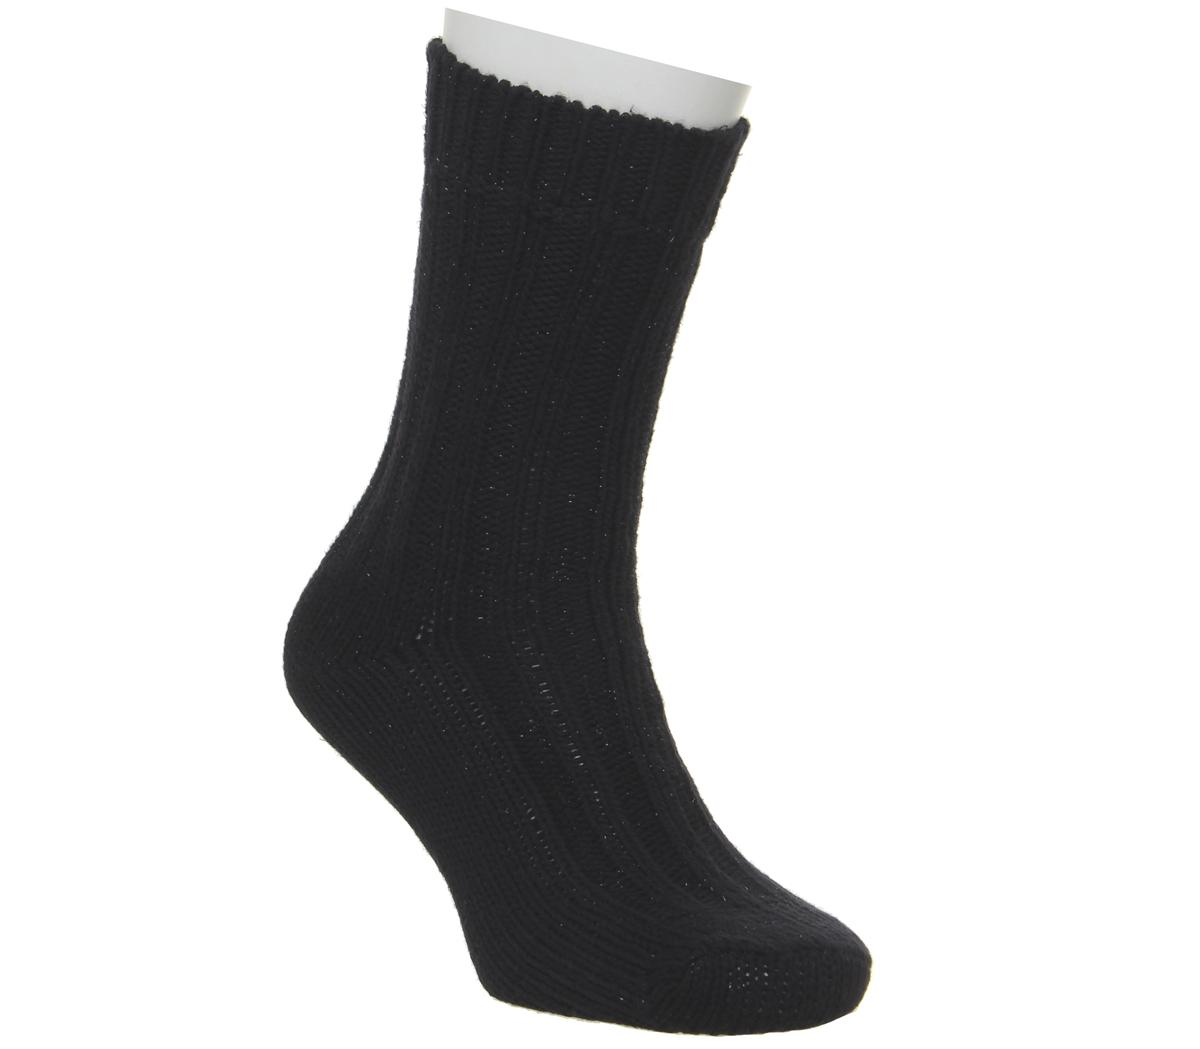 Bling Black Socks